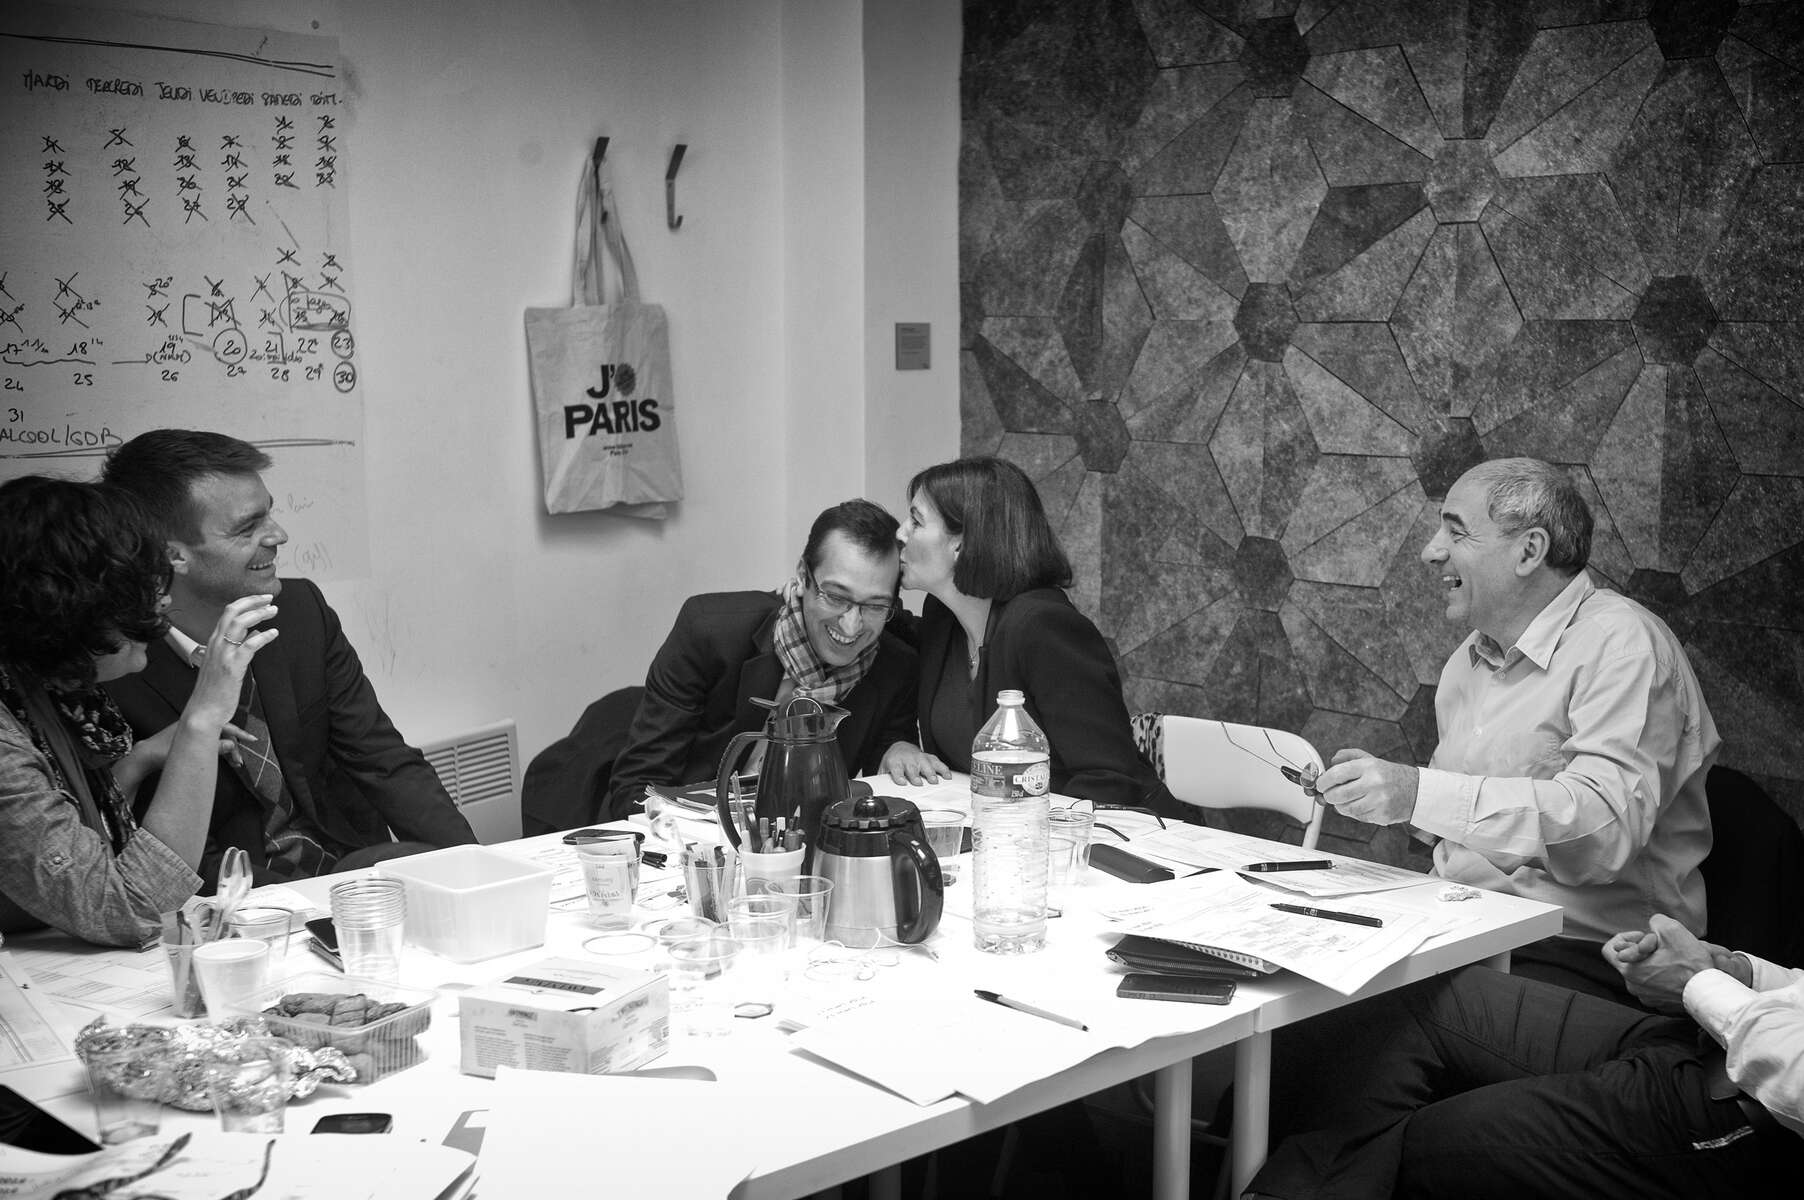 March 17, 2014.  PARIS, FRANCE- Mayoral candidate Anne Hidalgo takes notes on her calendar during a meeting with senior staff in her campaign's headquarters in Paris' Bastille neighborhood, including spokespeople Myriam El Khomri and Bruno Julliard, campaign co-directors Remi Feraud and Jean-Louis Missika (around Hidalgo), press liaison Hervé Marro, campaign coordinator Alexandra Cordebard, communications expert Philippe Grangeon, director of staff Jean-Marie Vernat, chief of staff Laure Moline, and advisor Elisa Yavchitz.   For the first time in France's history, Paris will have a woman as a mayor - either Socialist Anne Hidalgo or Center-Right Nathalie Kosciusko-Morizet.  Photo by Scout Tufankjian